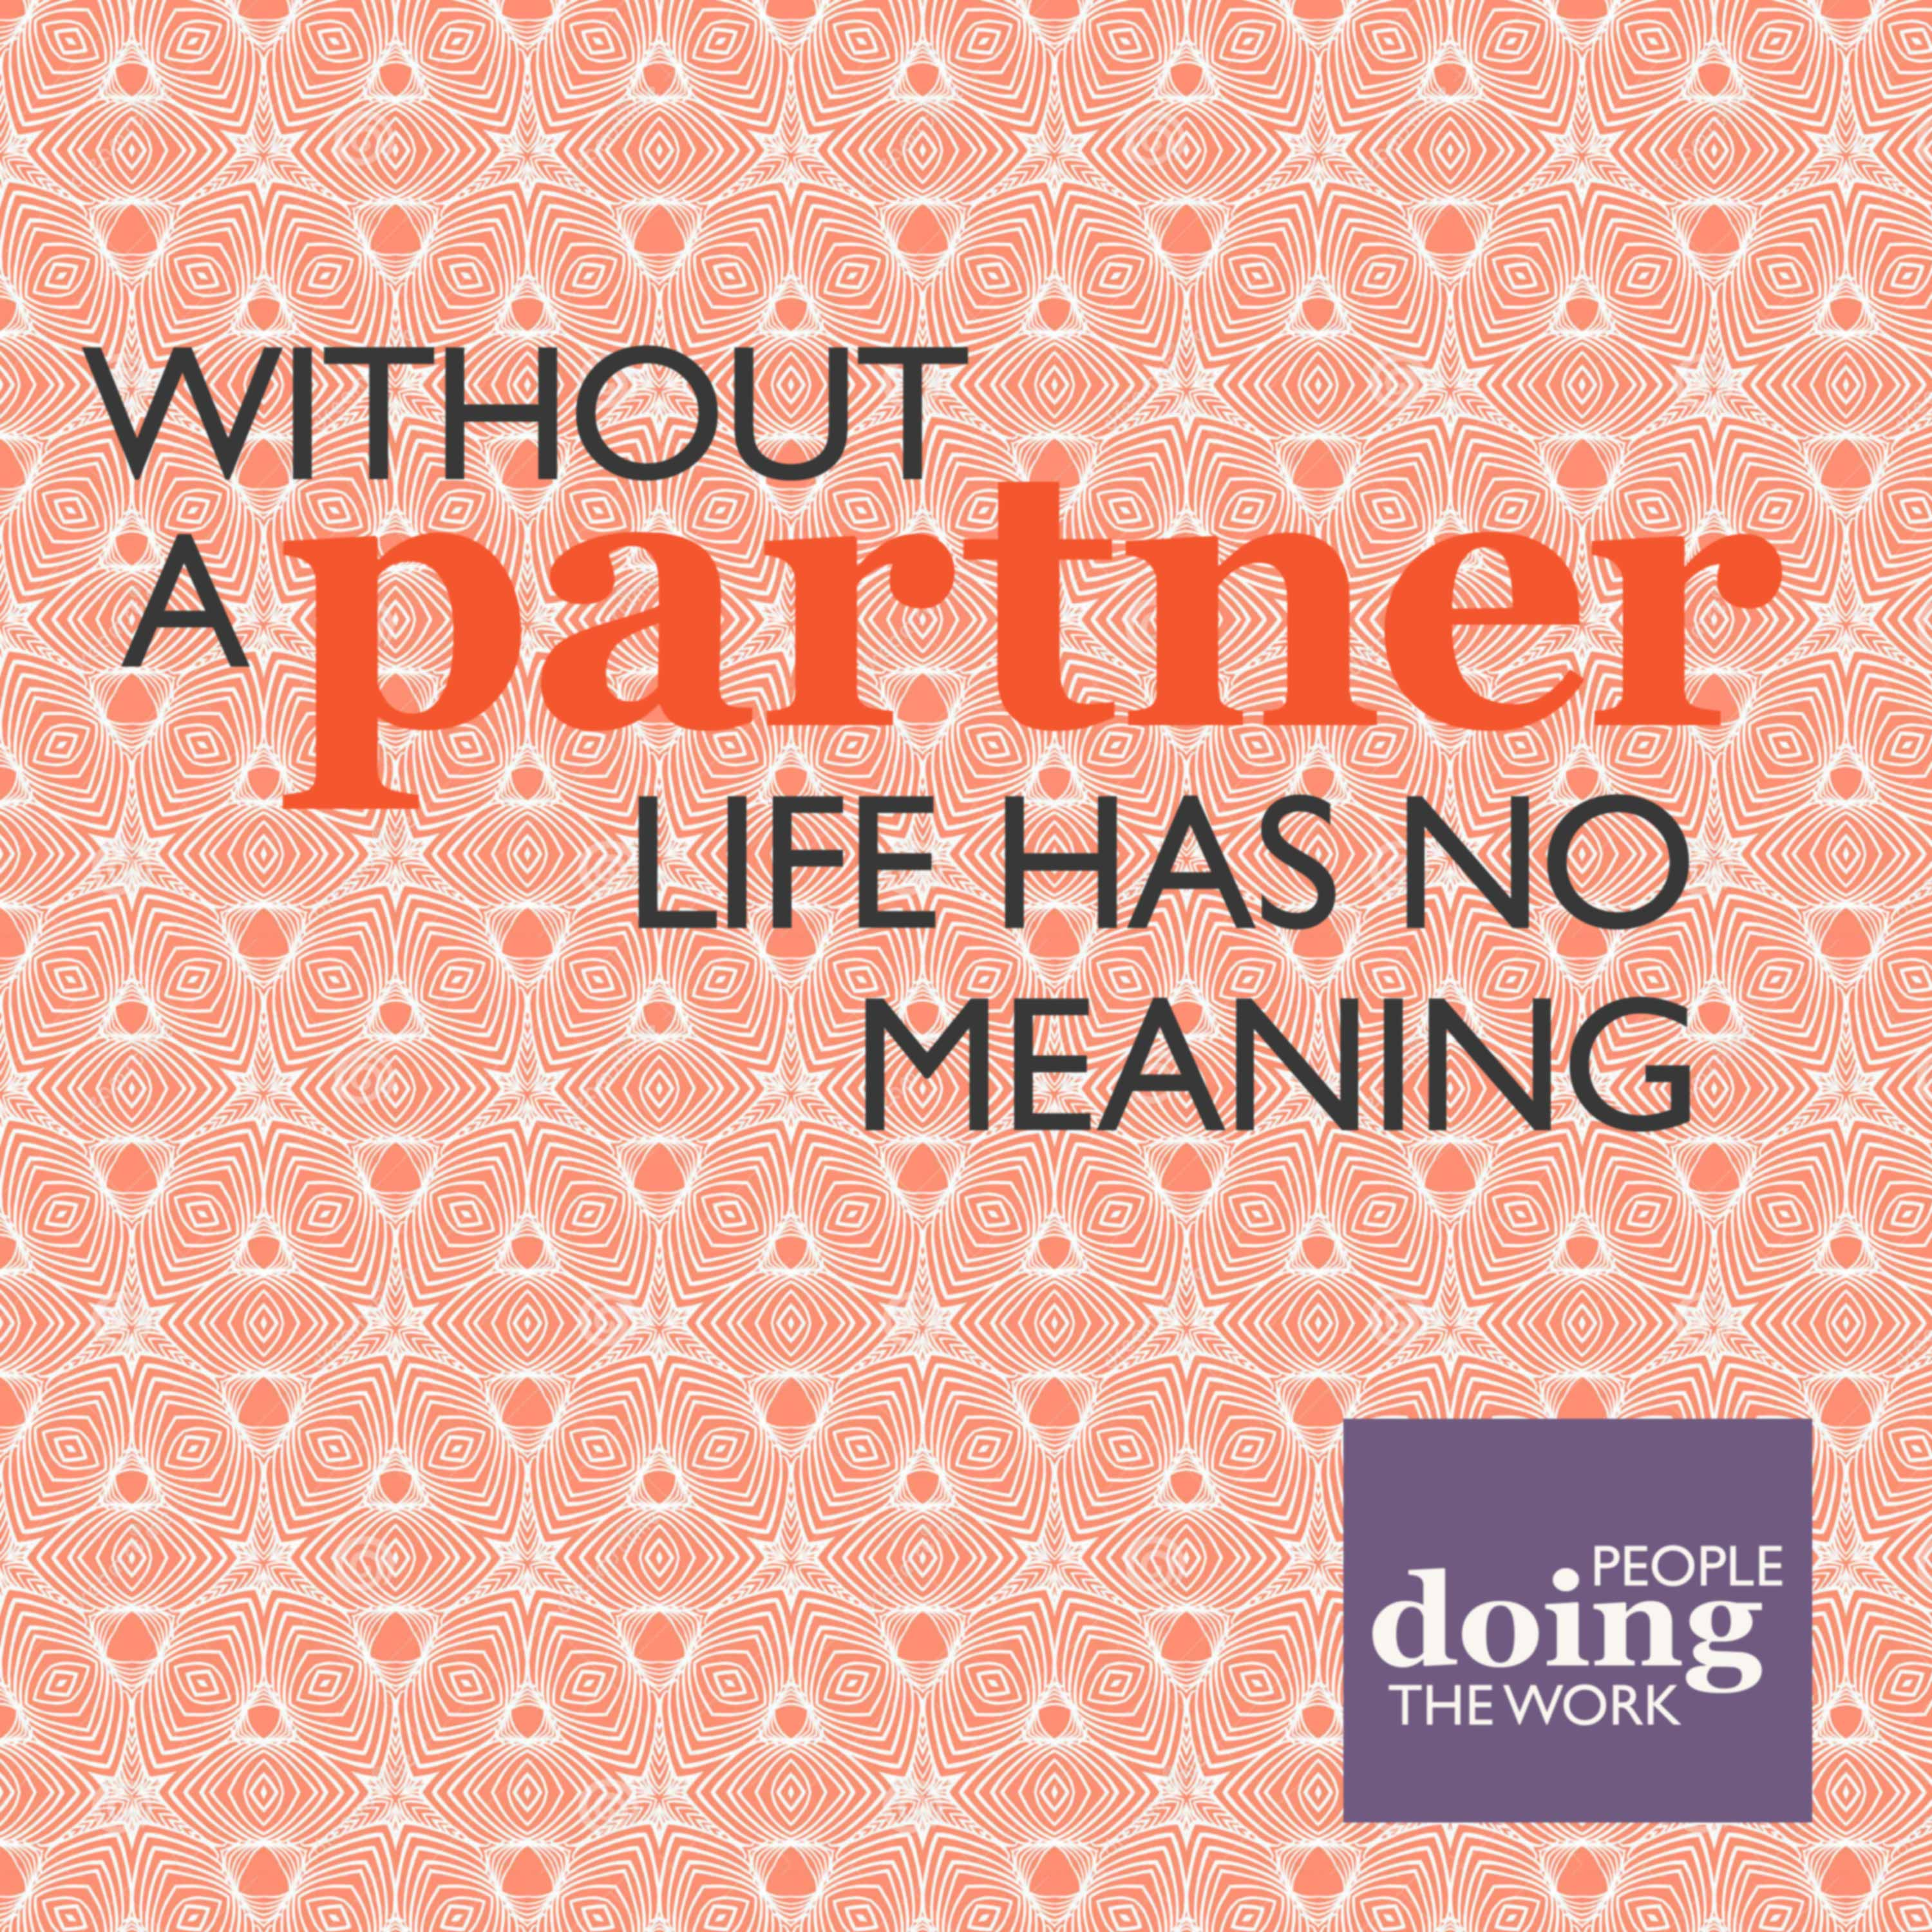 12. People Doing The Work (3): Without a Partner Life Has No Meaning